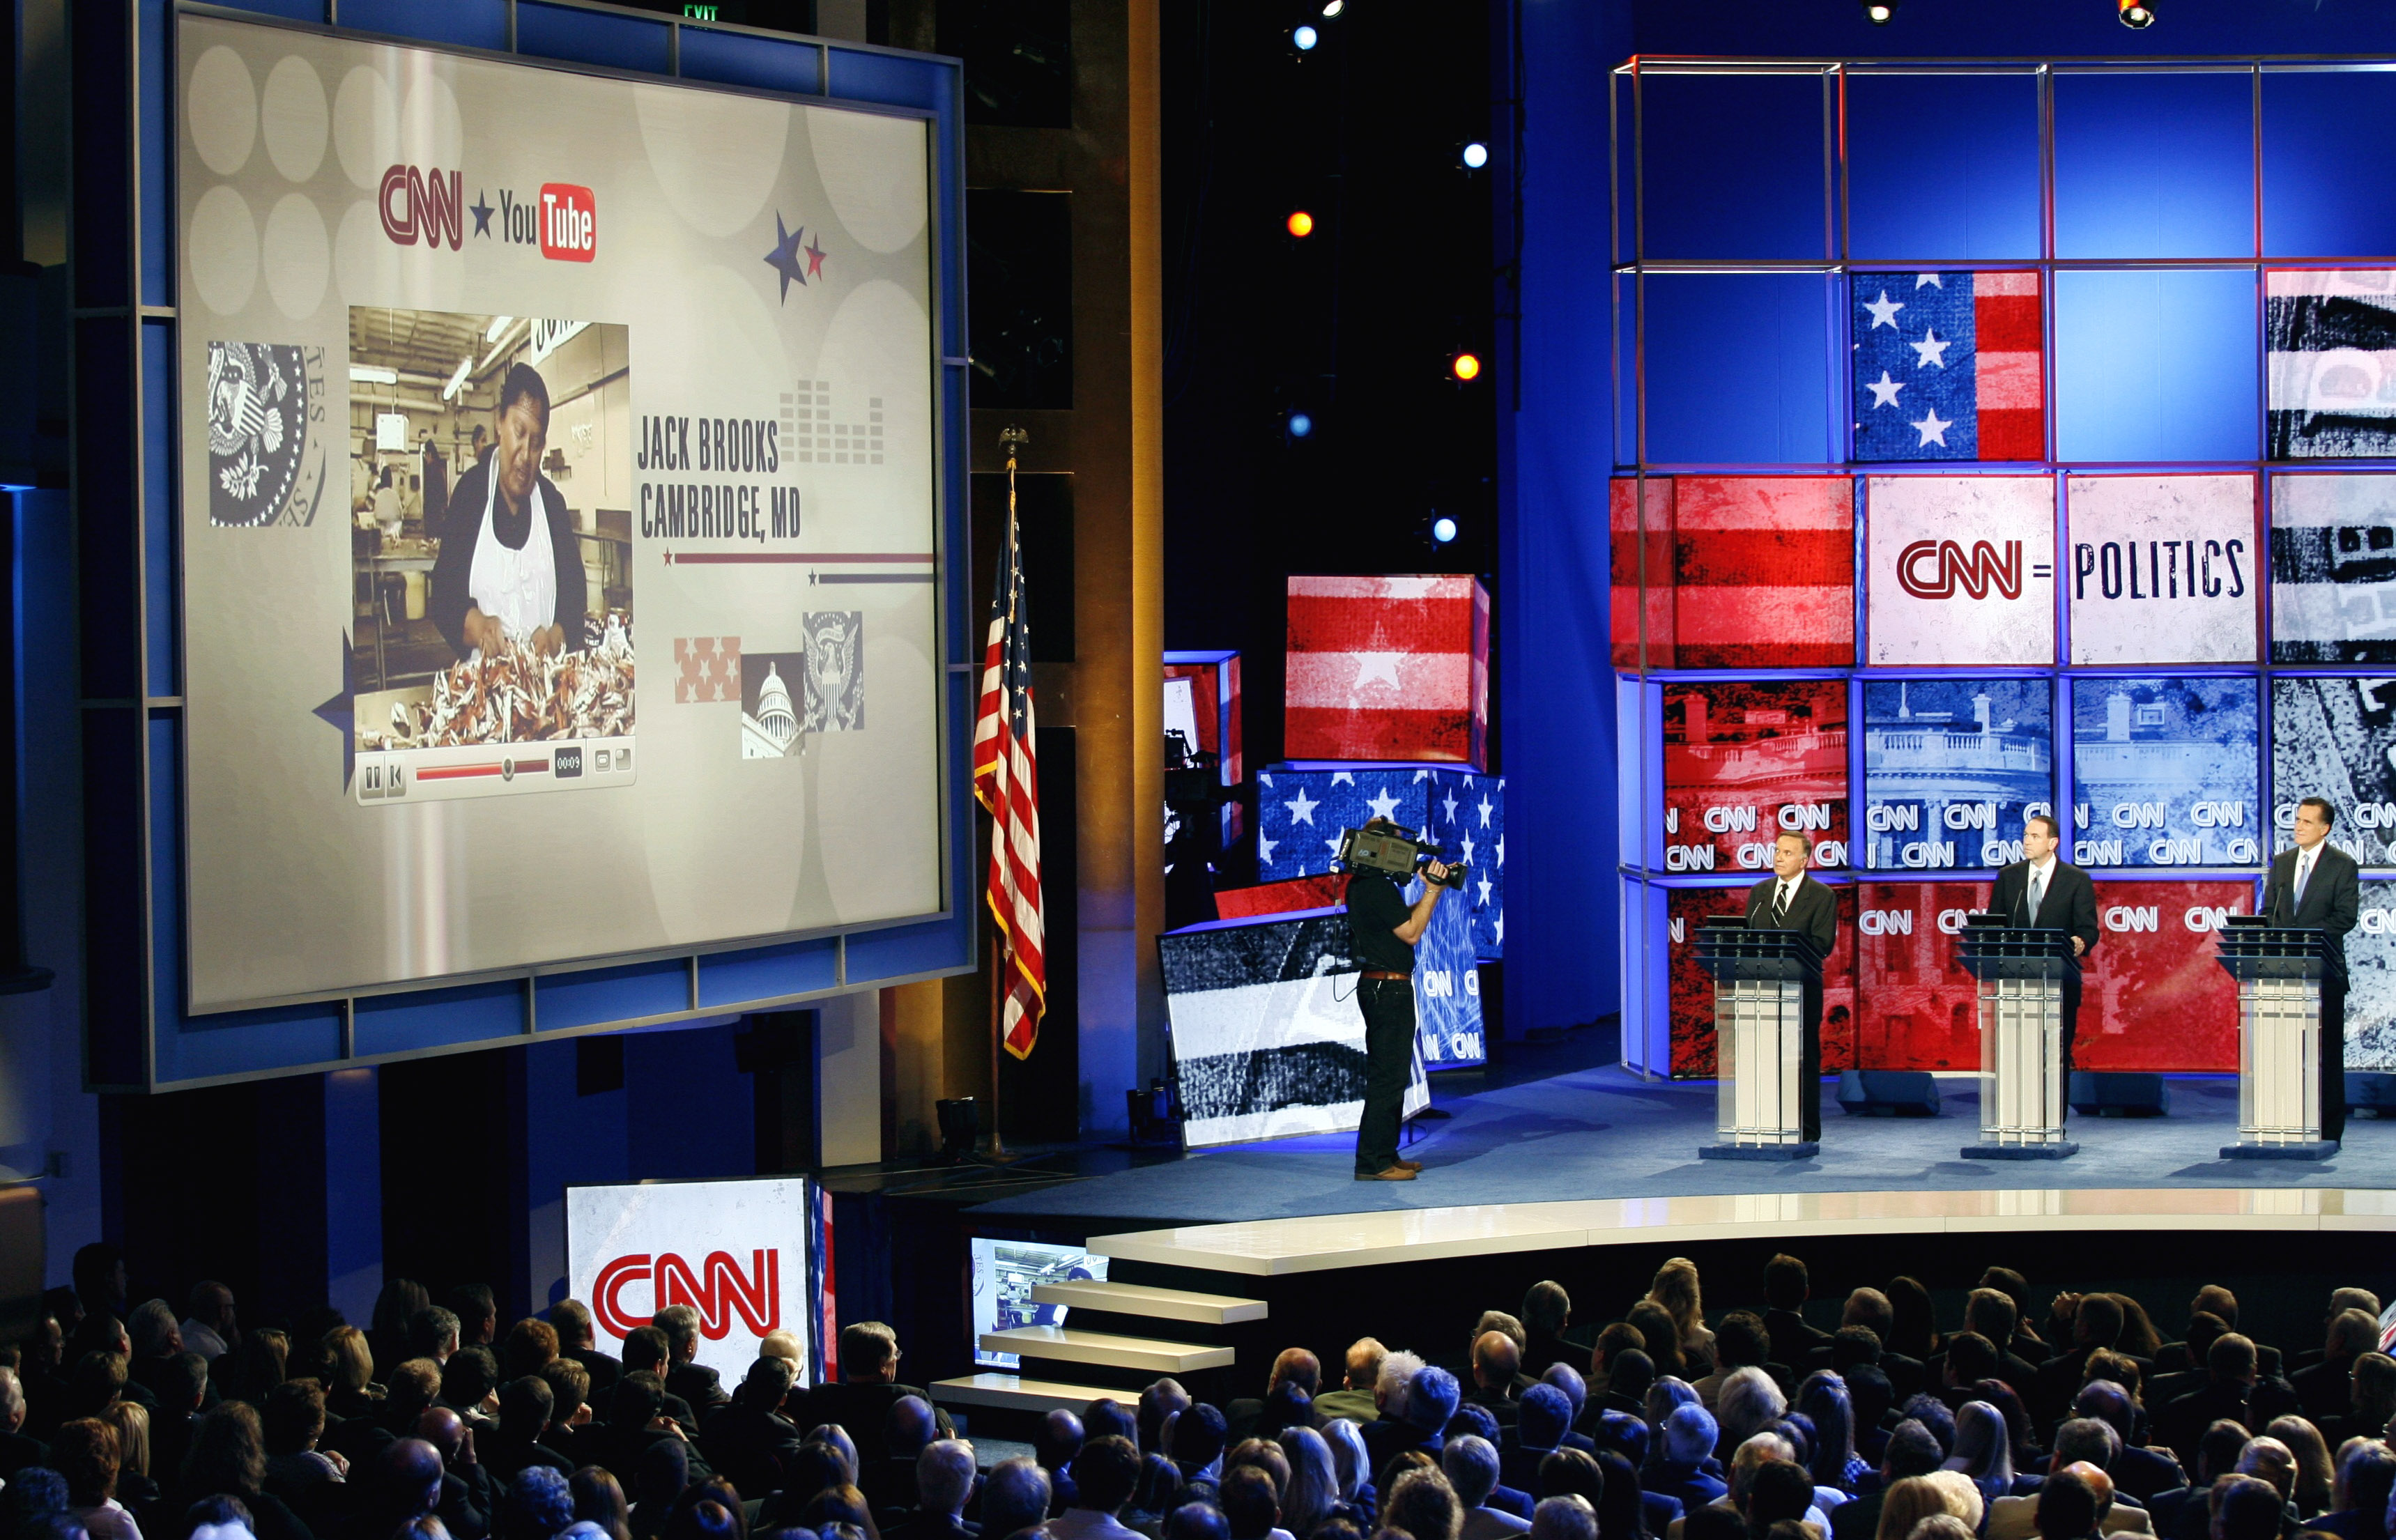 Republican presidential candidates take questions at the CNN/YouTube/Republican Party of Florida presidential debate in St. Petersburg